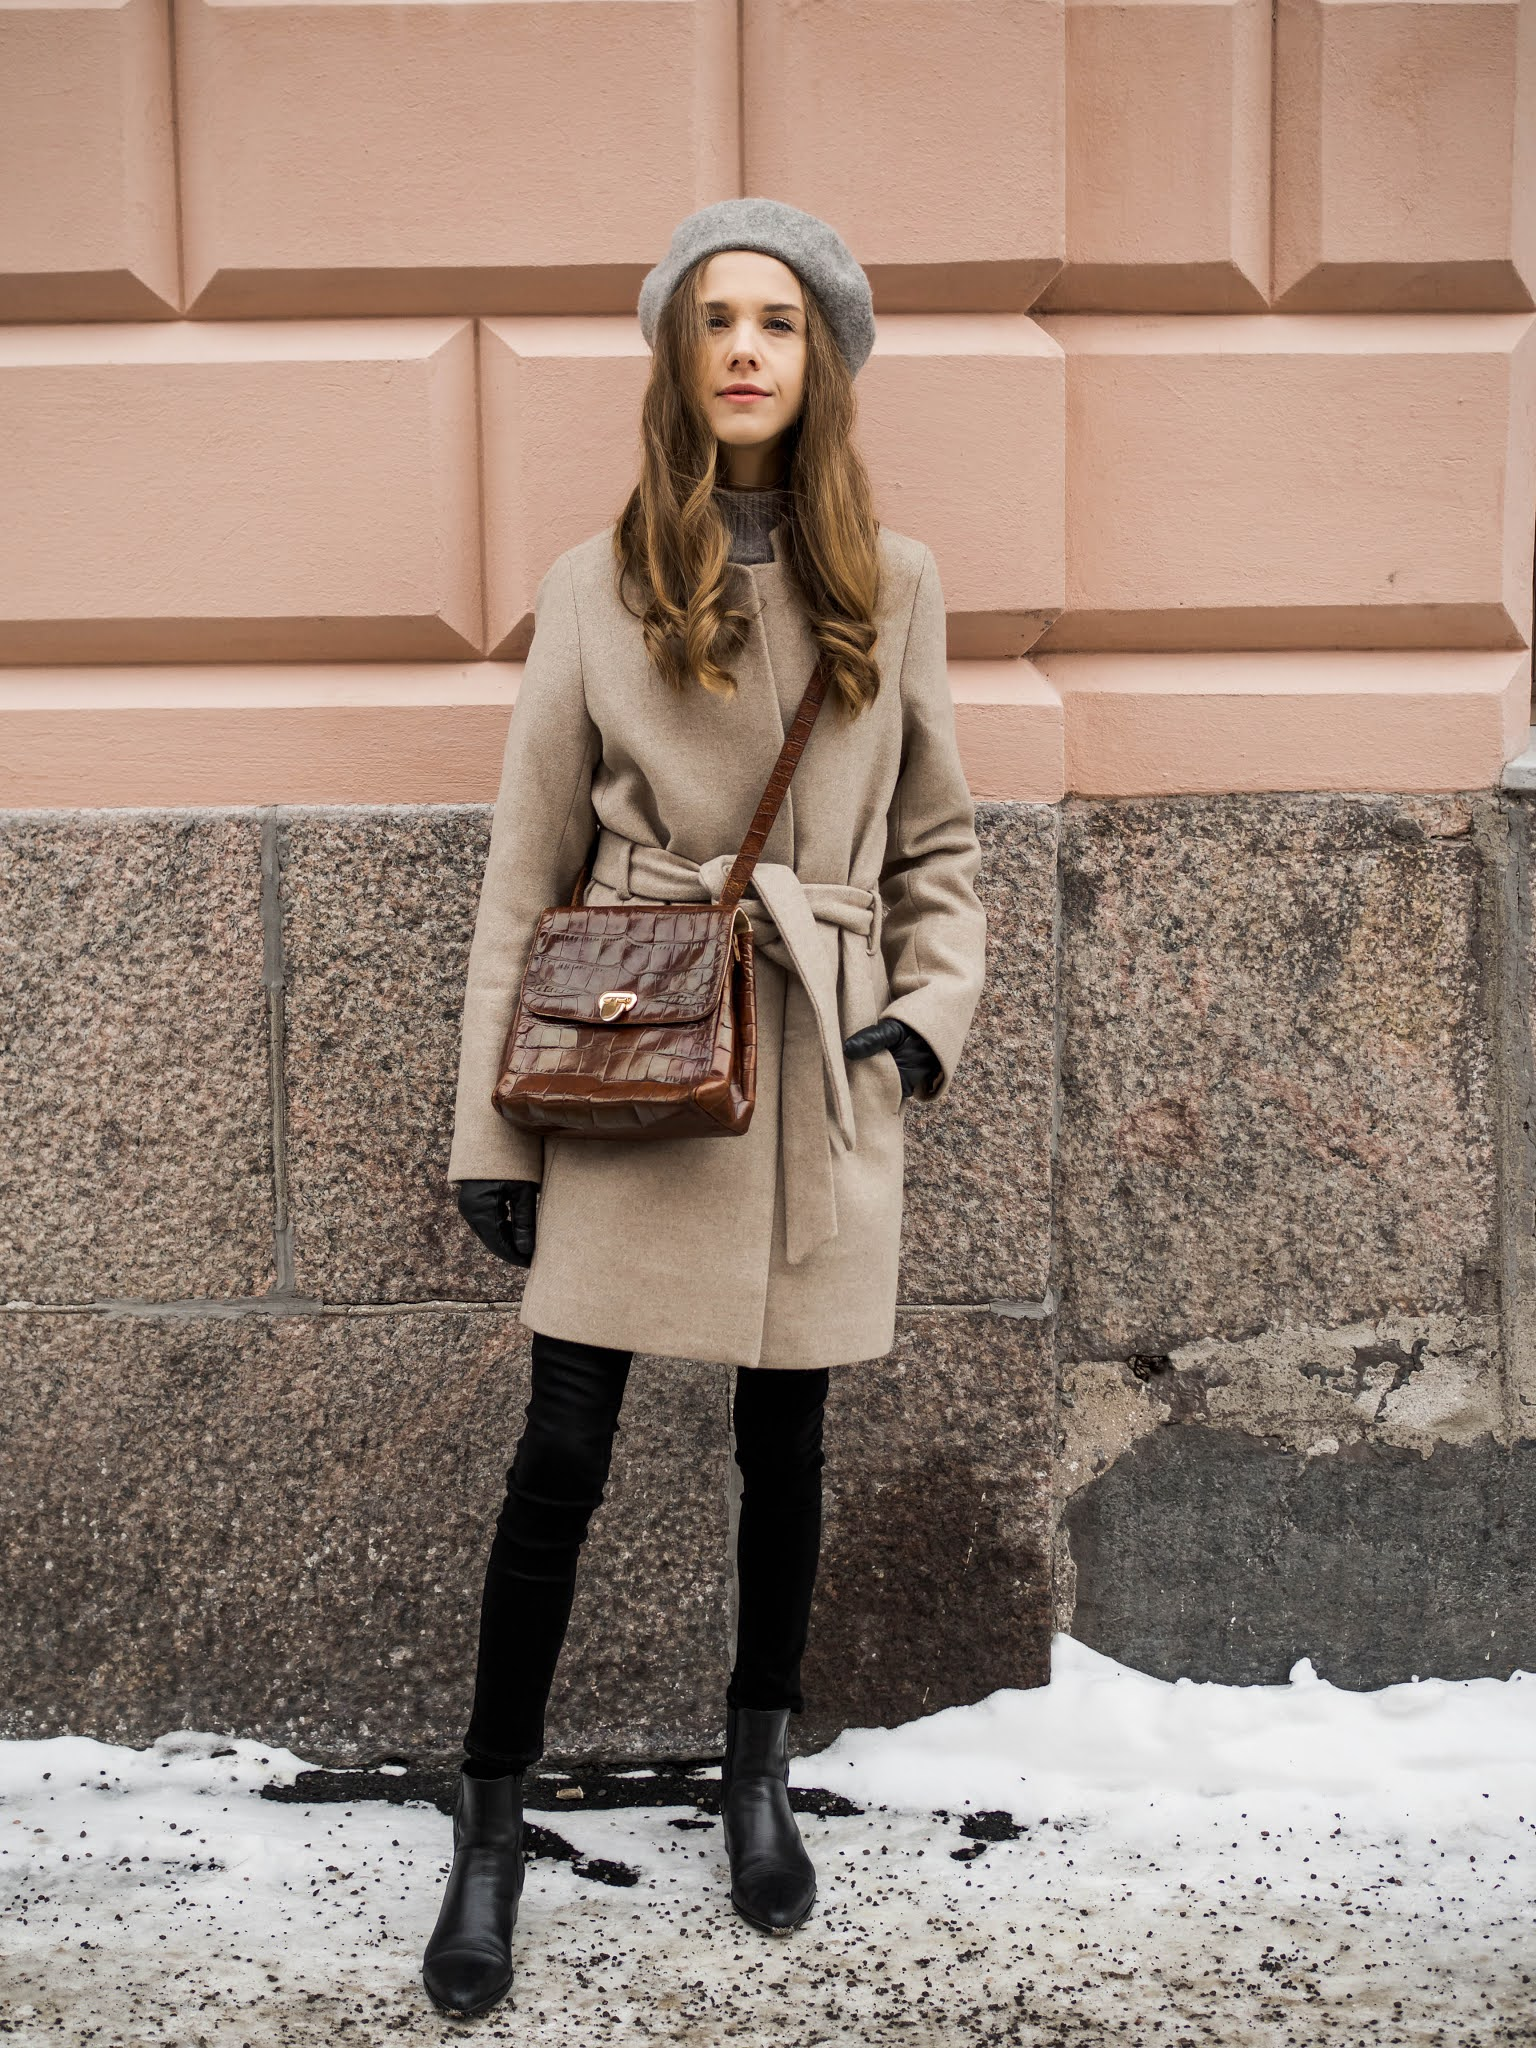 Alkukevään pukeutuminen: lyhyt villakangastakki ja baskeri // Late winter and early spring outfit inspiration with wool blend jacket and beret